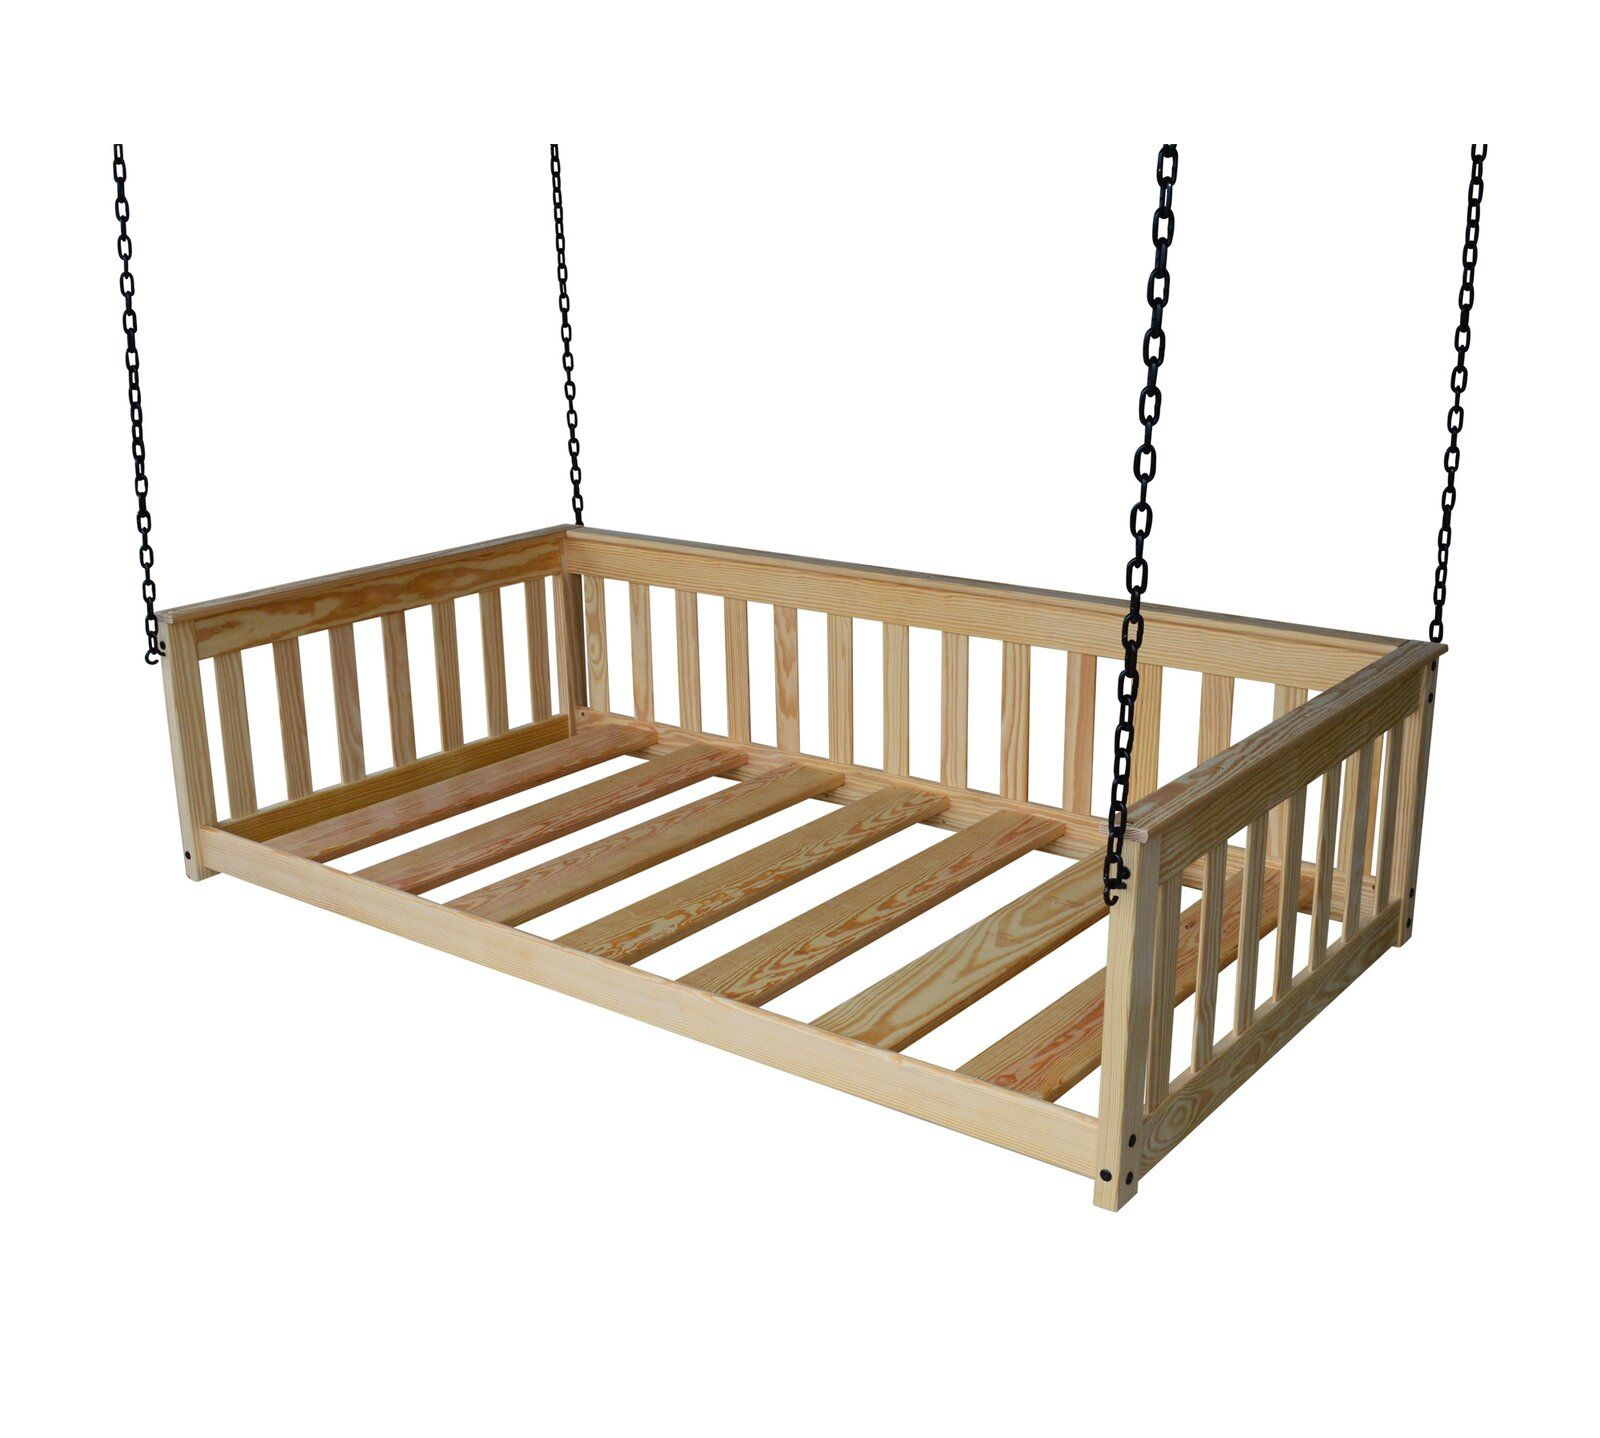 Concow Porch Swing In 2020 Porch Swing Daybed Swing Porch Swing Frame